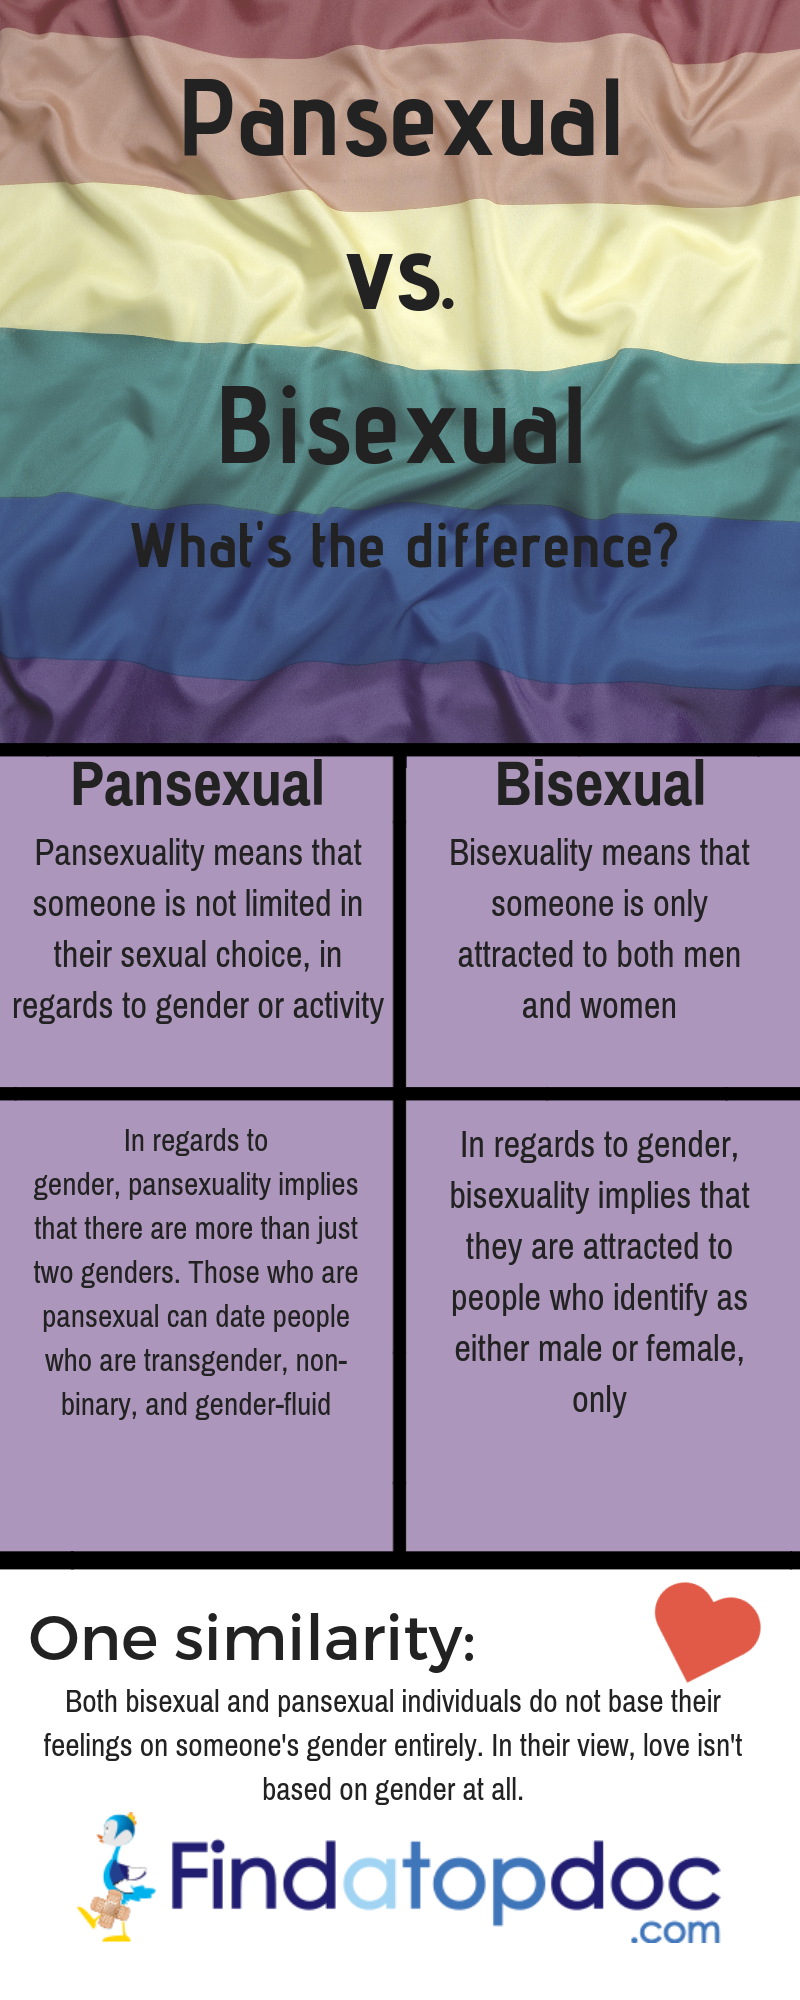 What Is Pansexual? What Does Pansexual Mean?